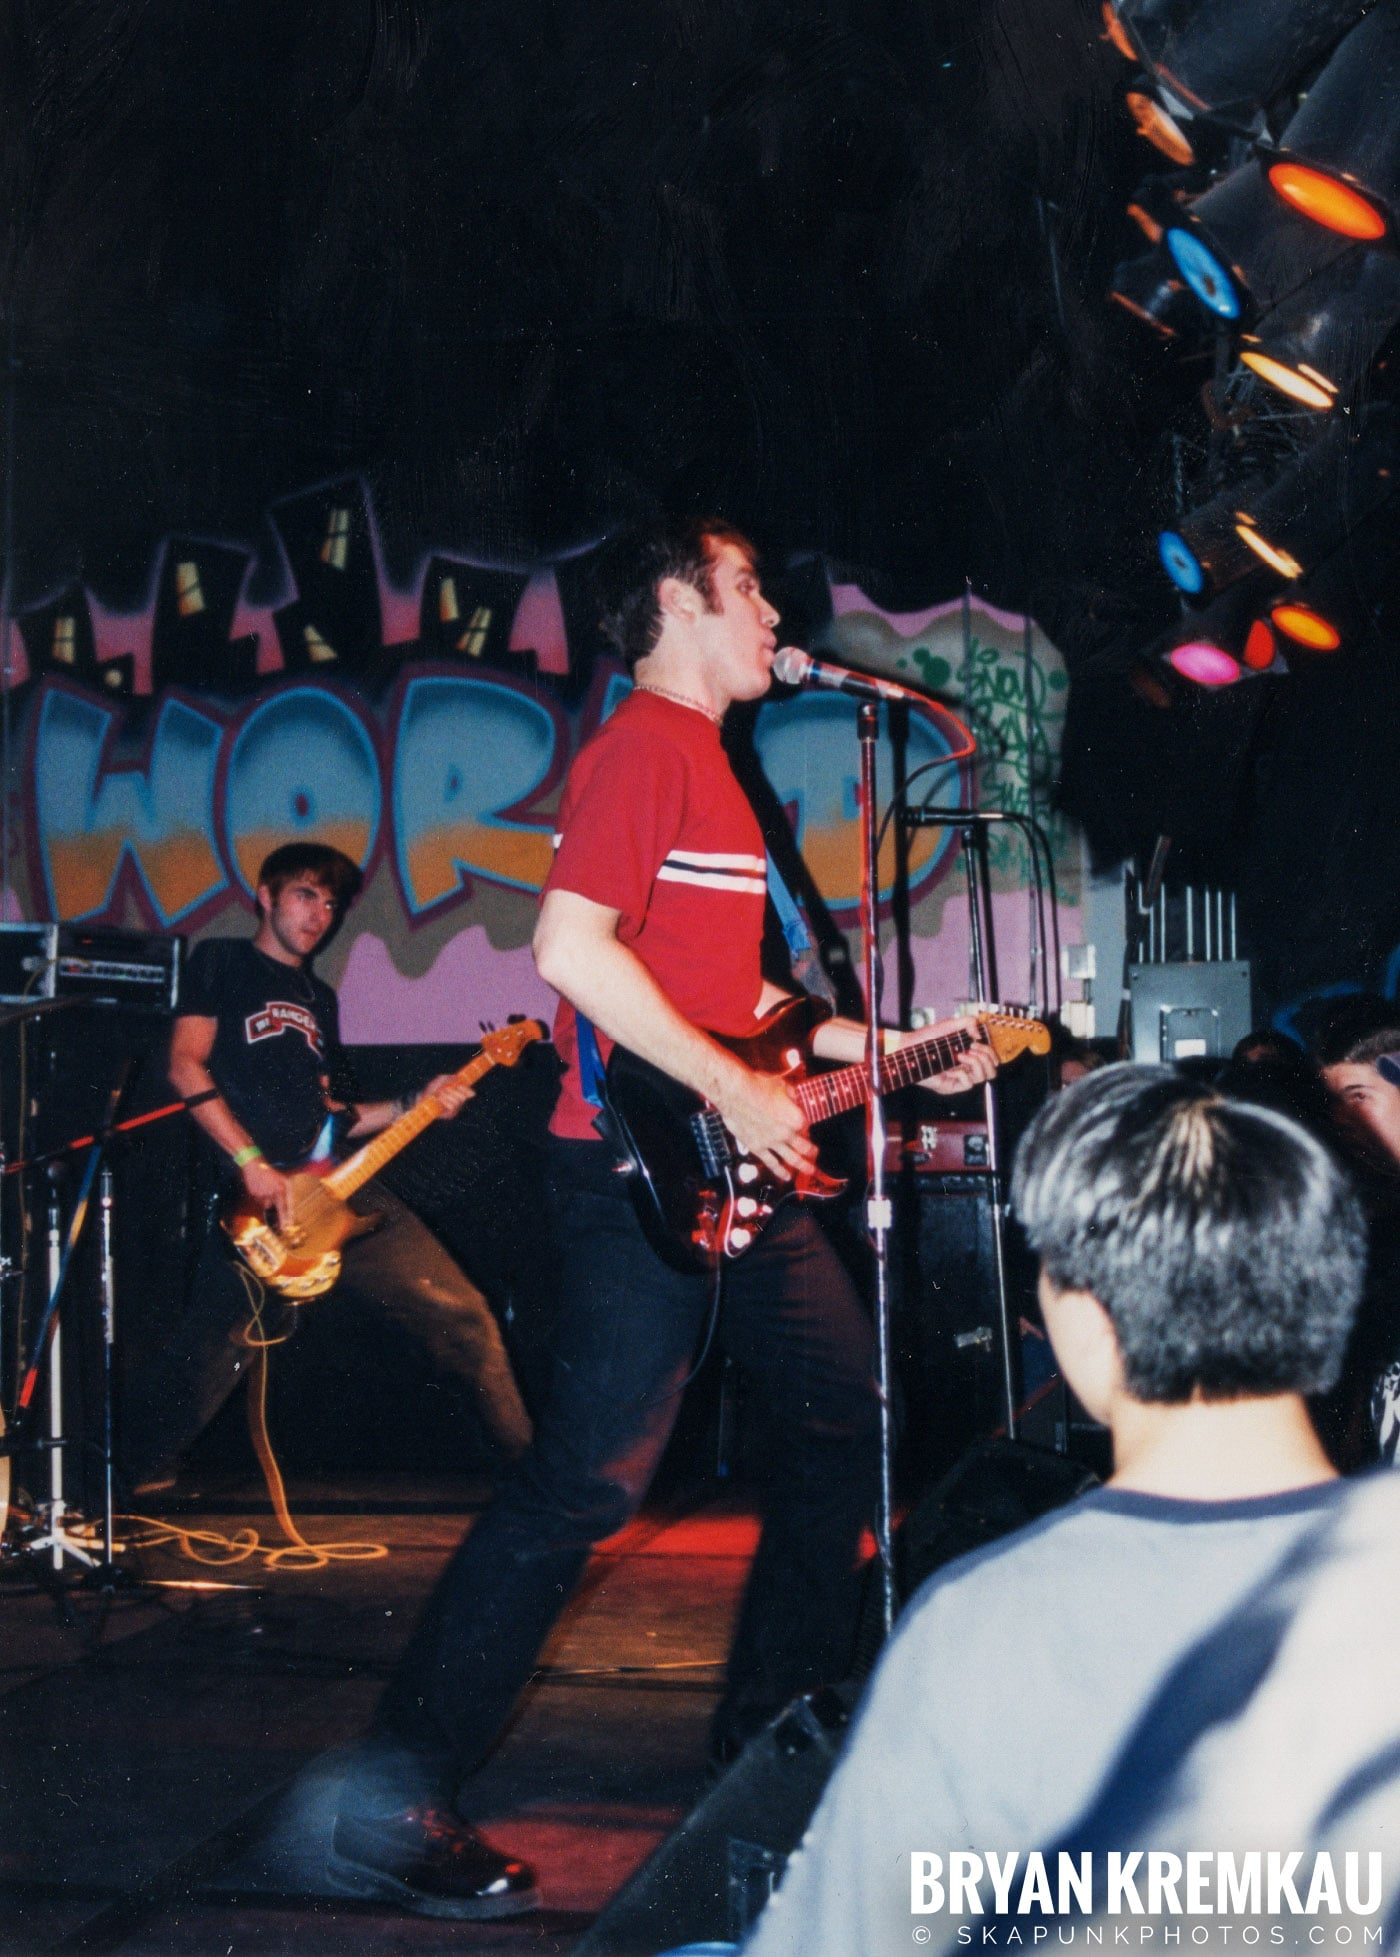 Animal Chin @ Skater's World, Wayne, NJ - 7.8.98 (6)